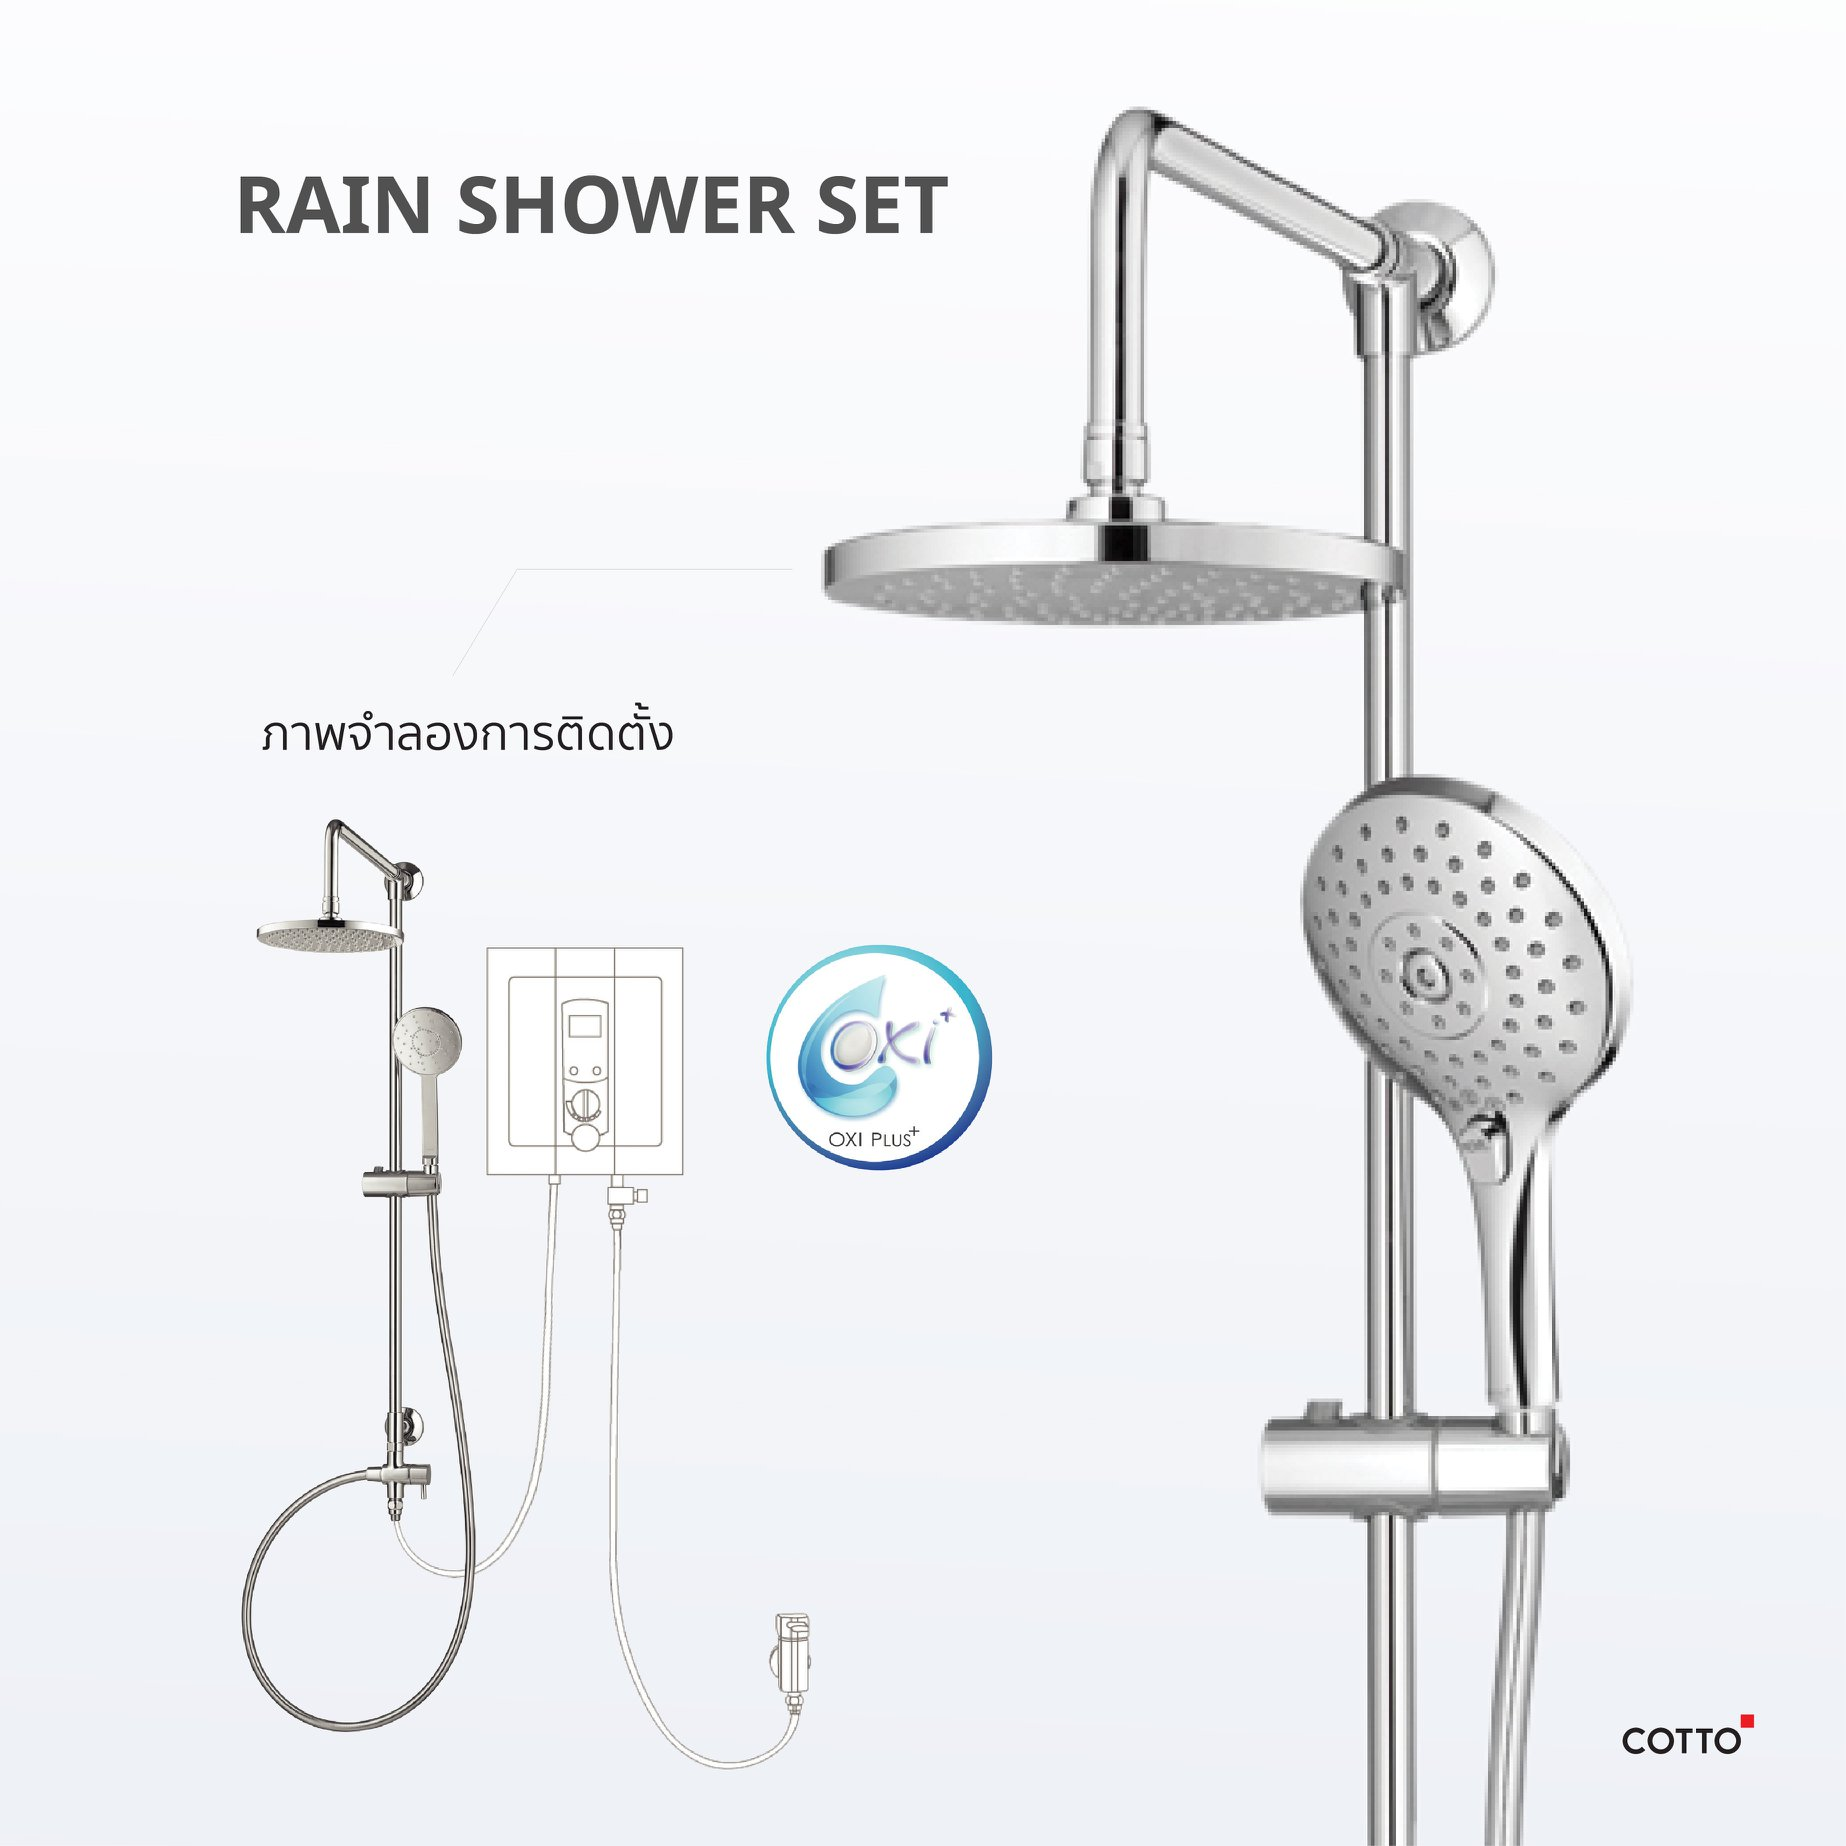 Cotto best seller showers